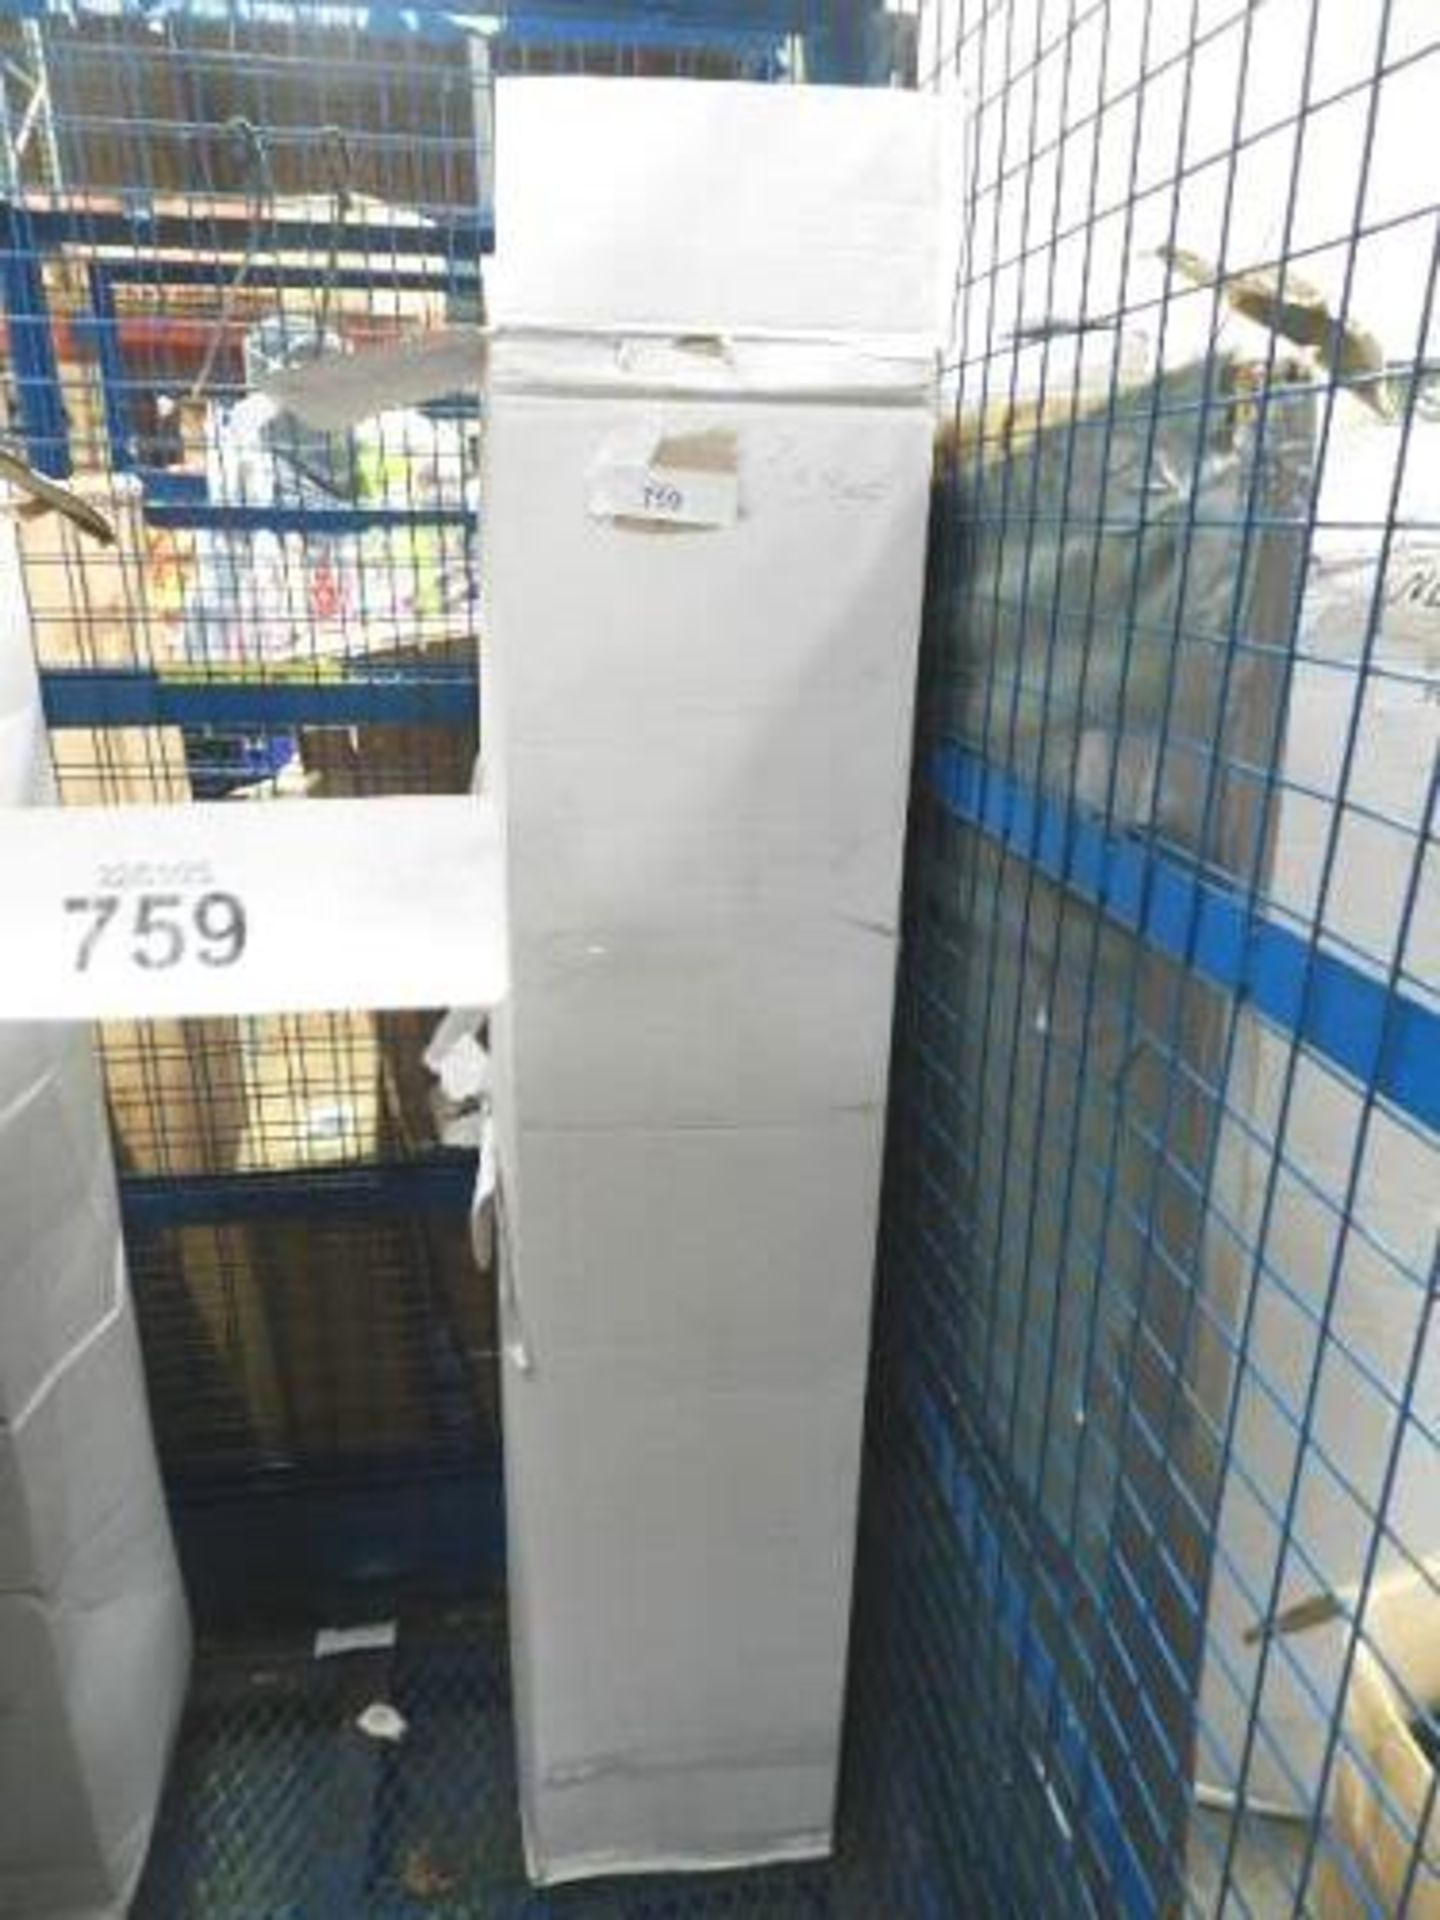 Lot 759 - 1 x sprung double mattress, Ref: 1102, size 4.5ft x 6.5ft - Sealed new in box (GSF31)